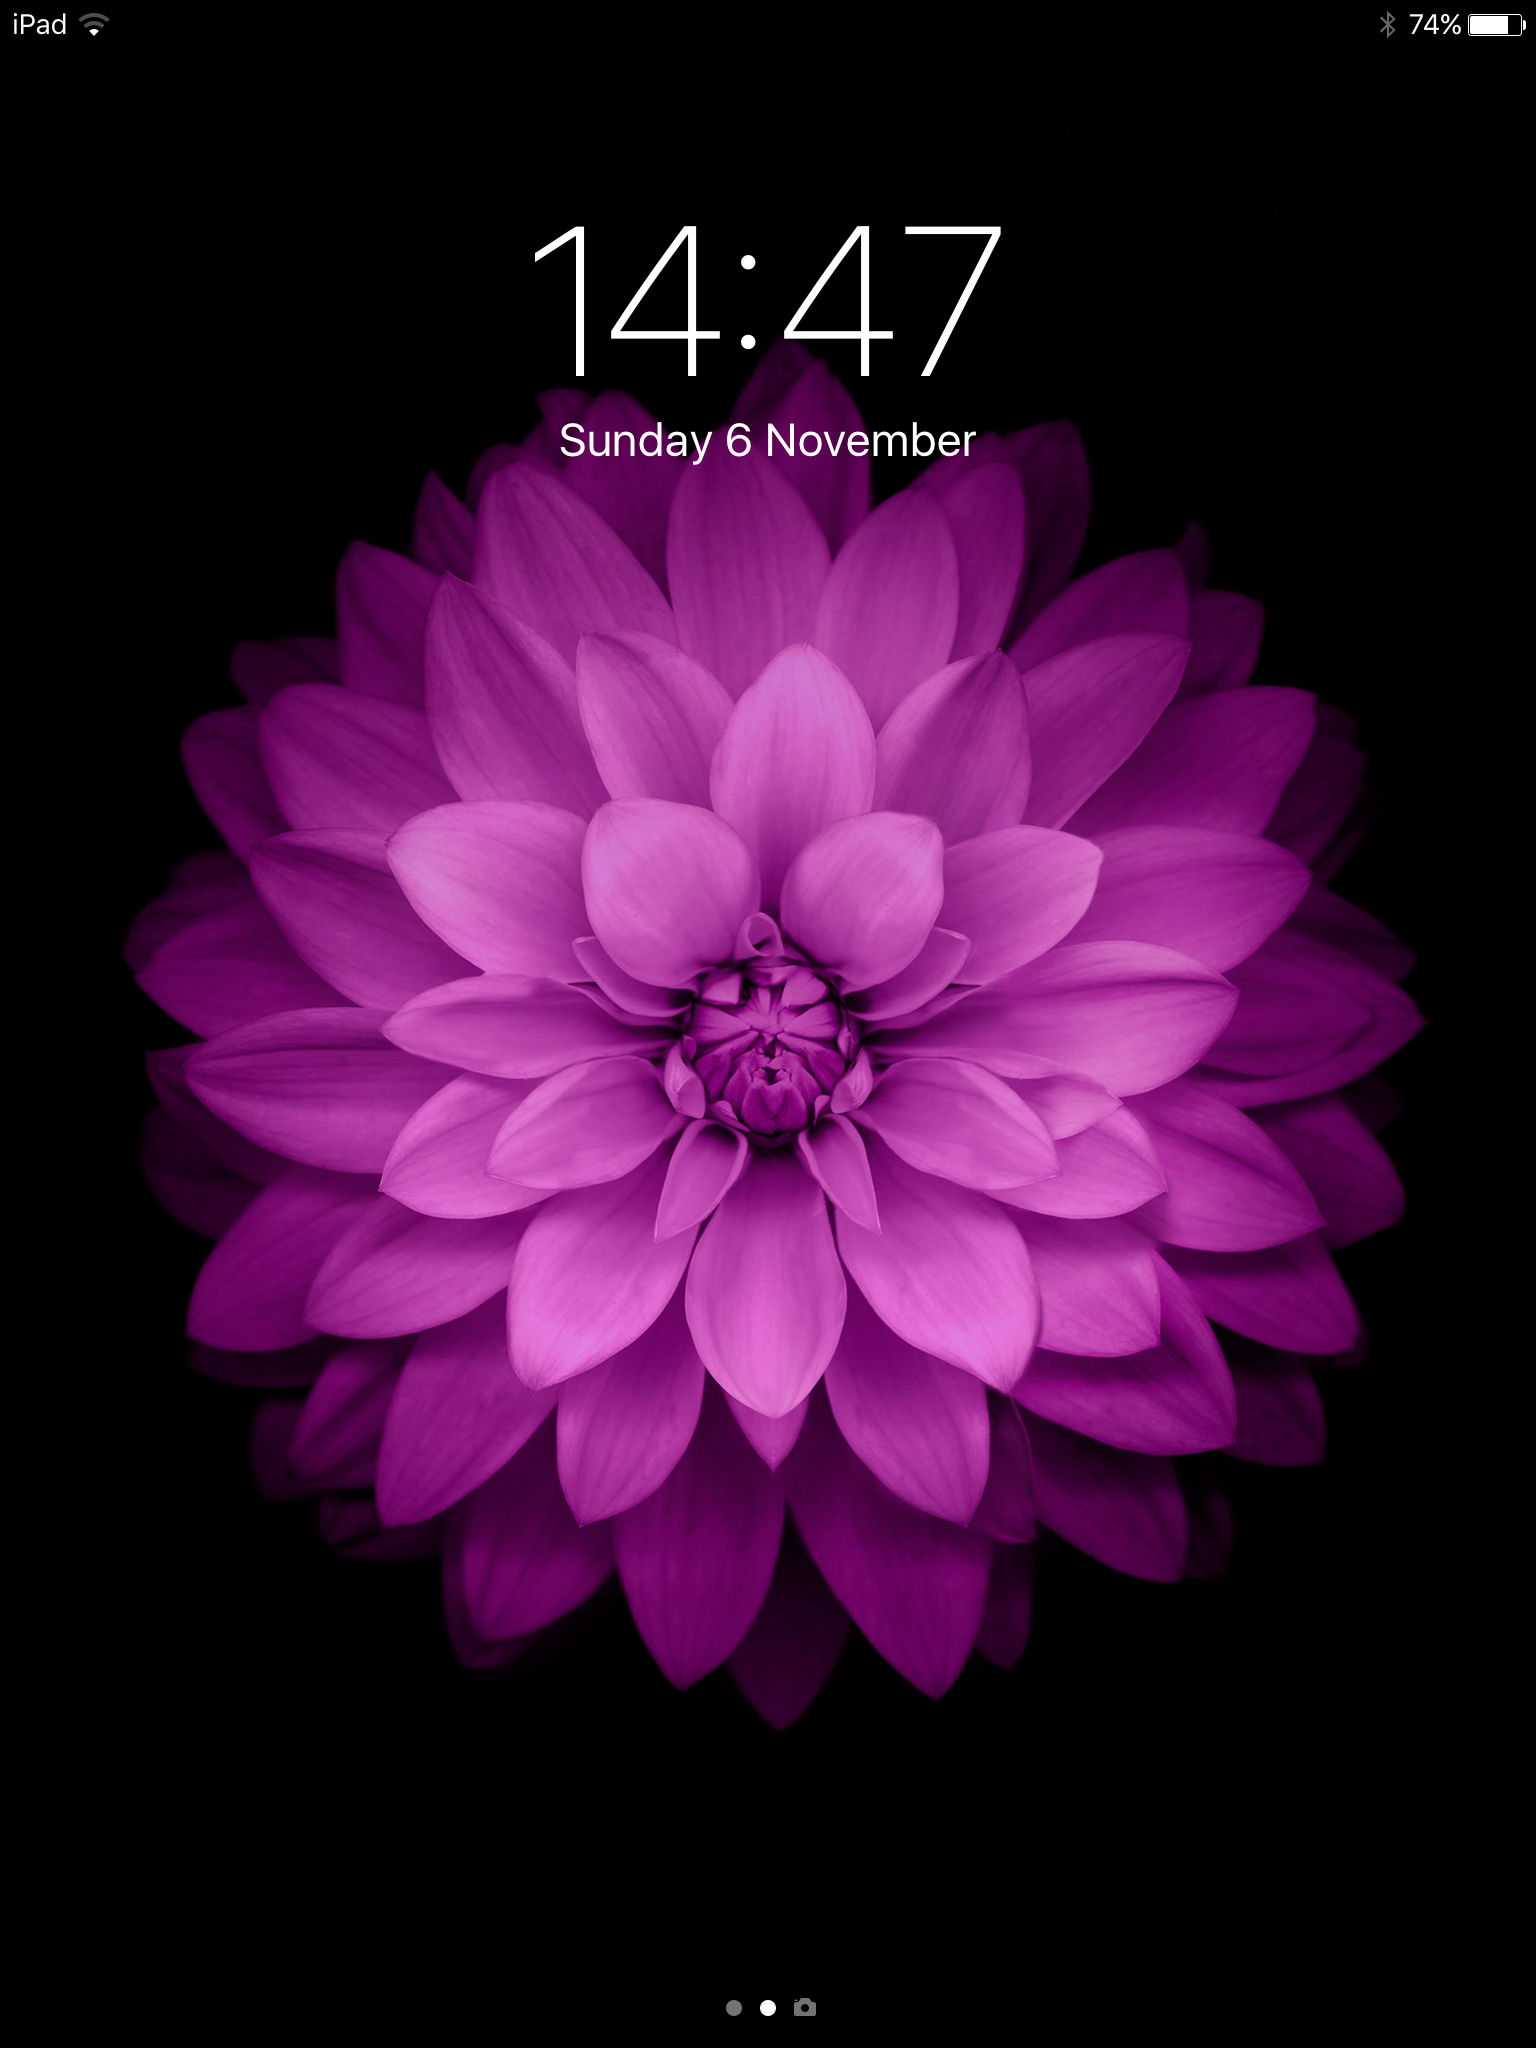 Pin by Ellie on Flowers Flower iphone wallpaper, Iphone